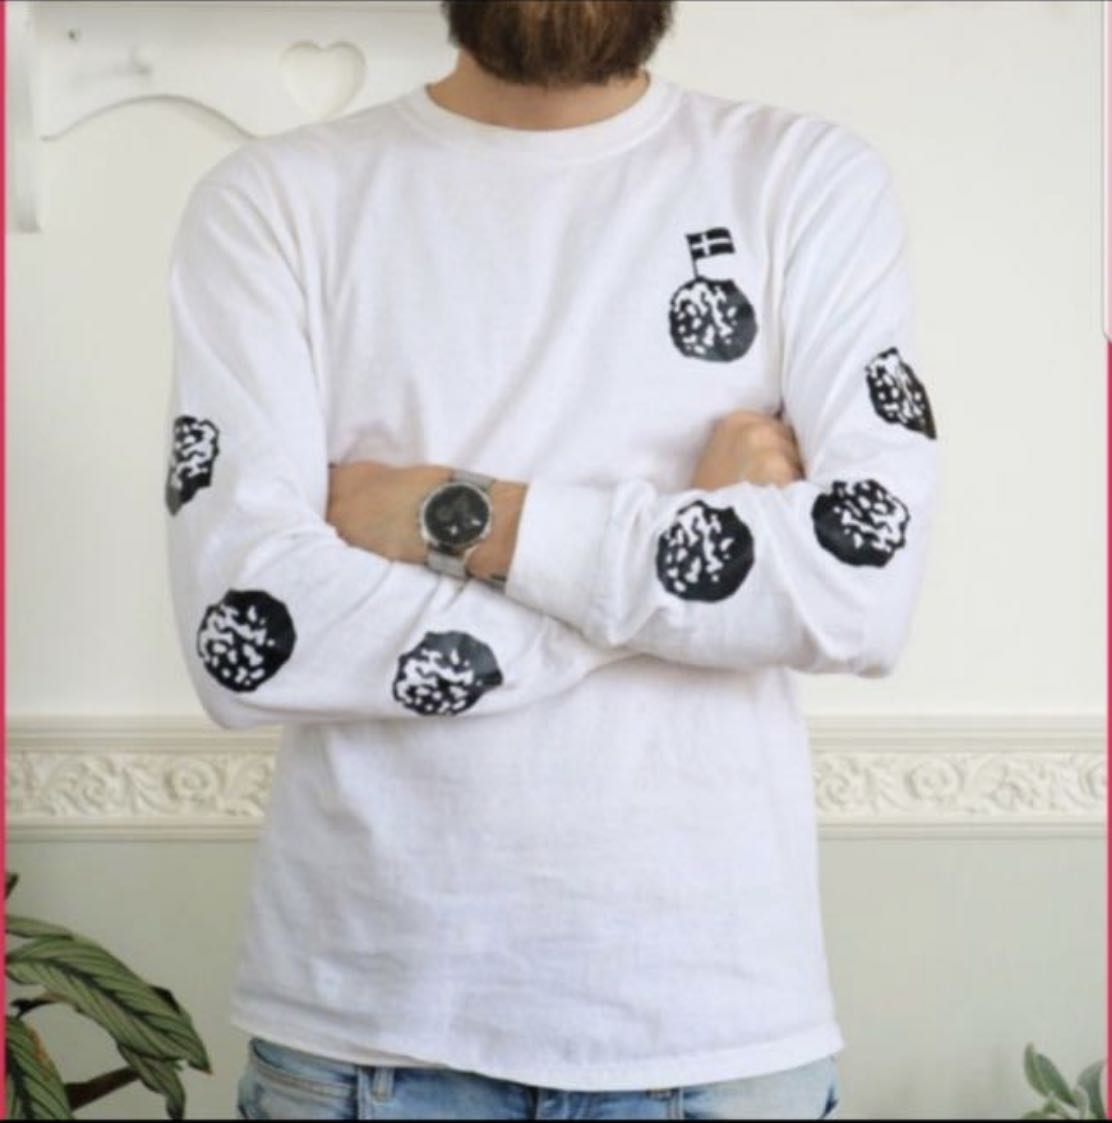 Pewdiepie Meatball Shirt Limited Edition Mens Fashion Clothes Jaket Hoodie Navy Tops On Carousell